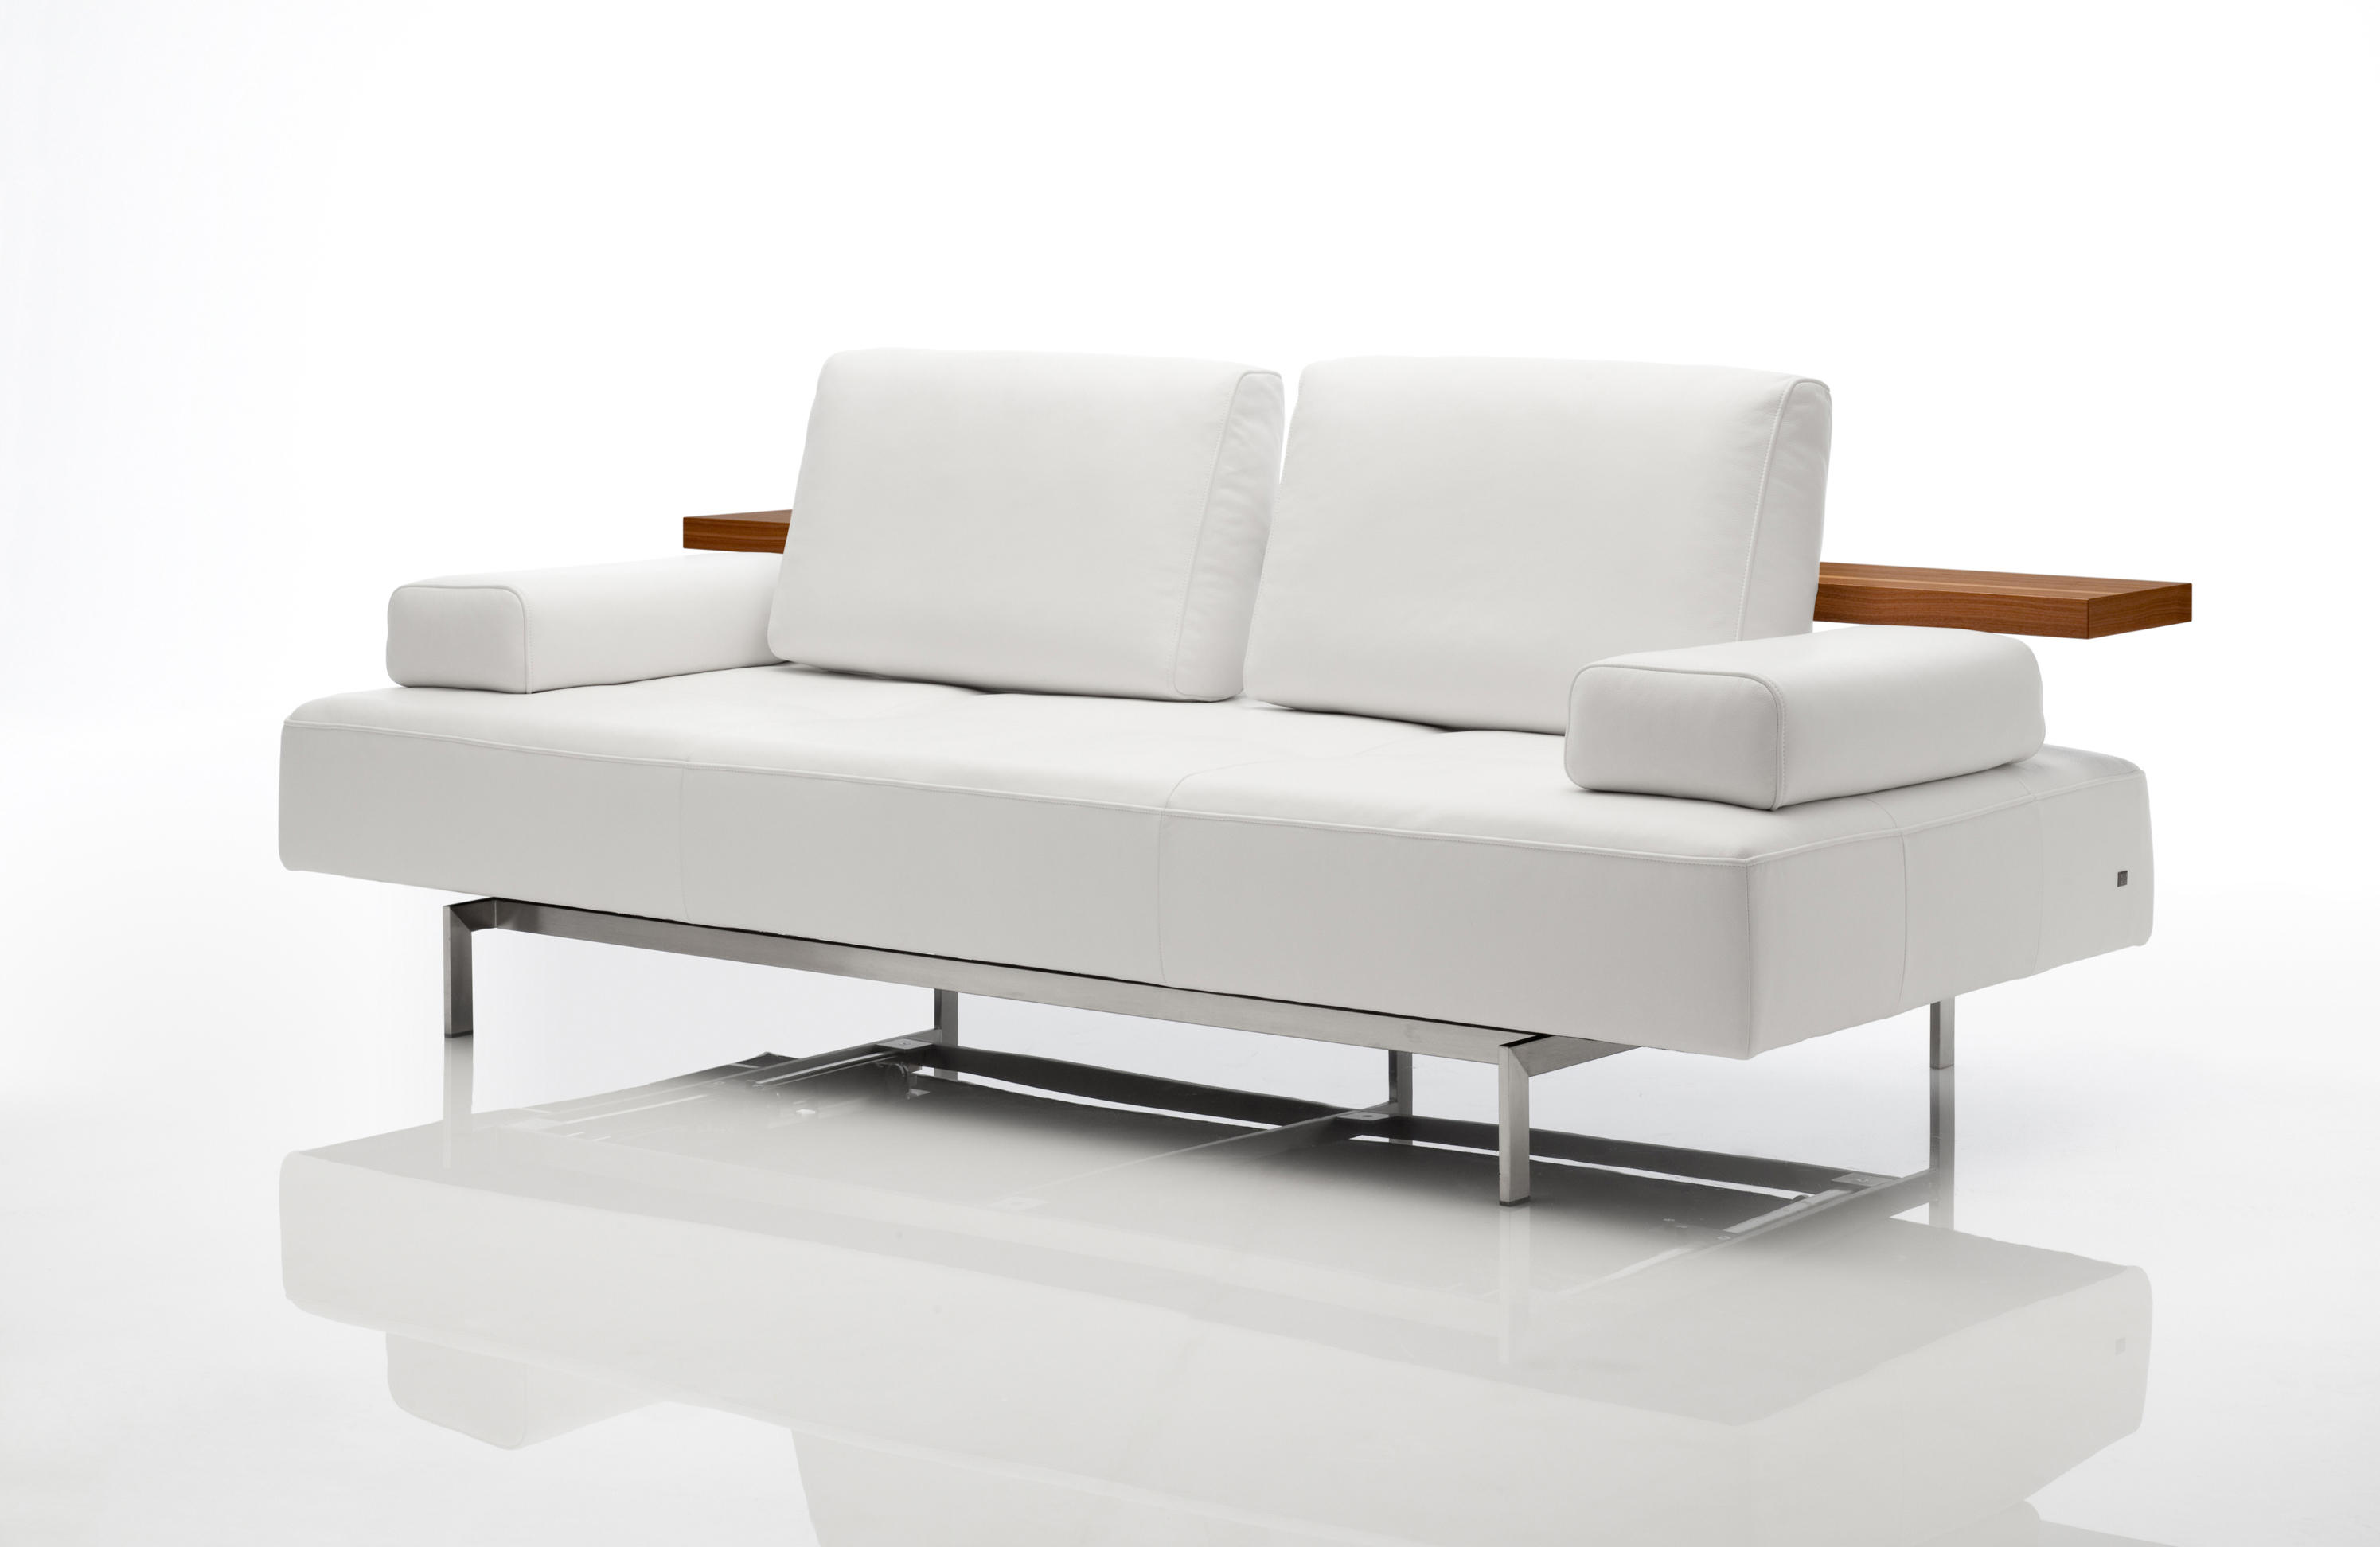 Rolf benz dono loungesofas von rolf benz architonic for Rolf benz katalog